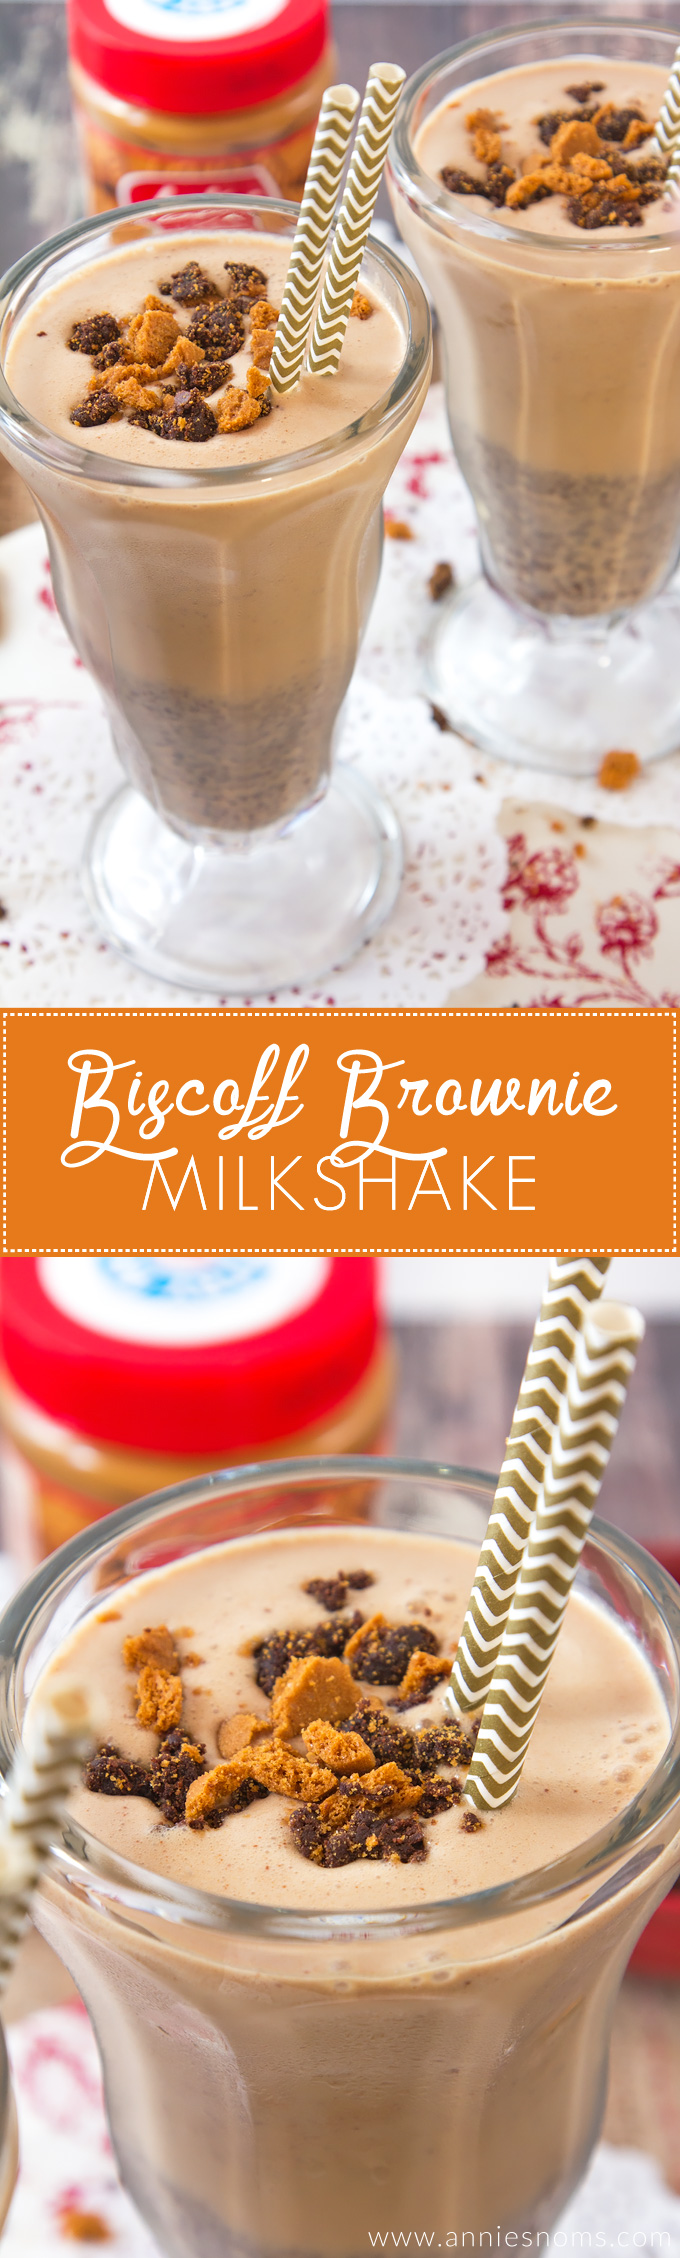 This Biscoff Brownie Milkshake is one super decadent, rich milkshake ...